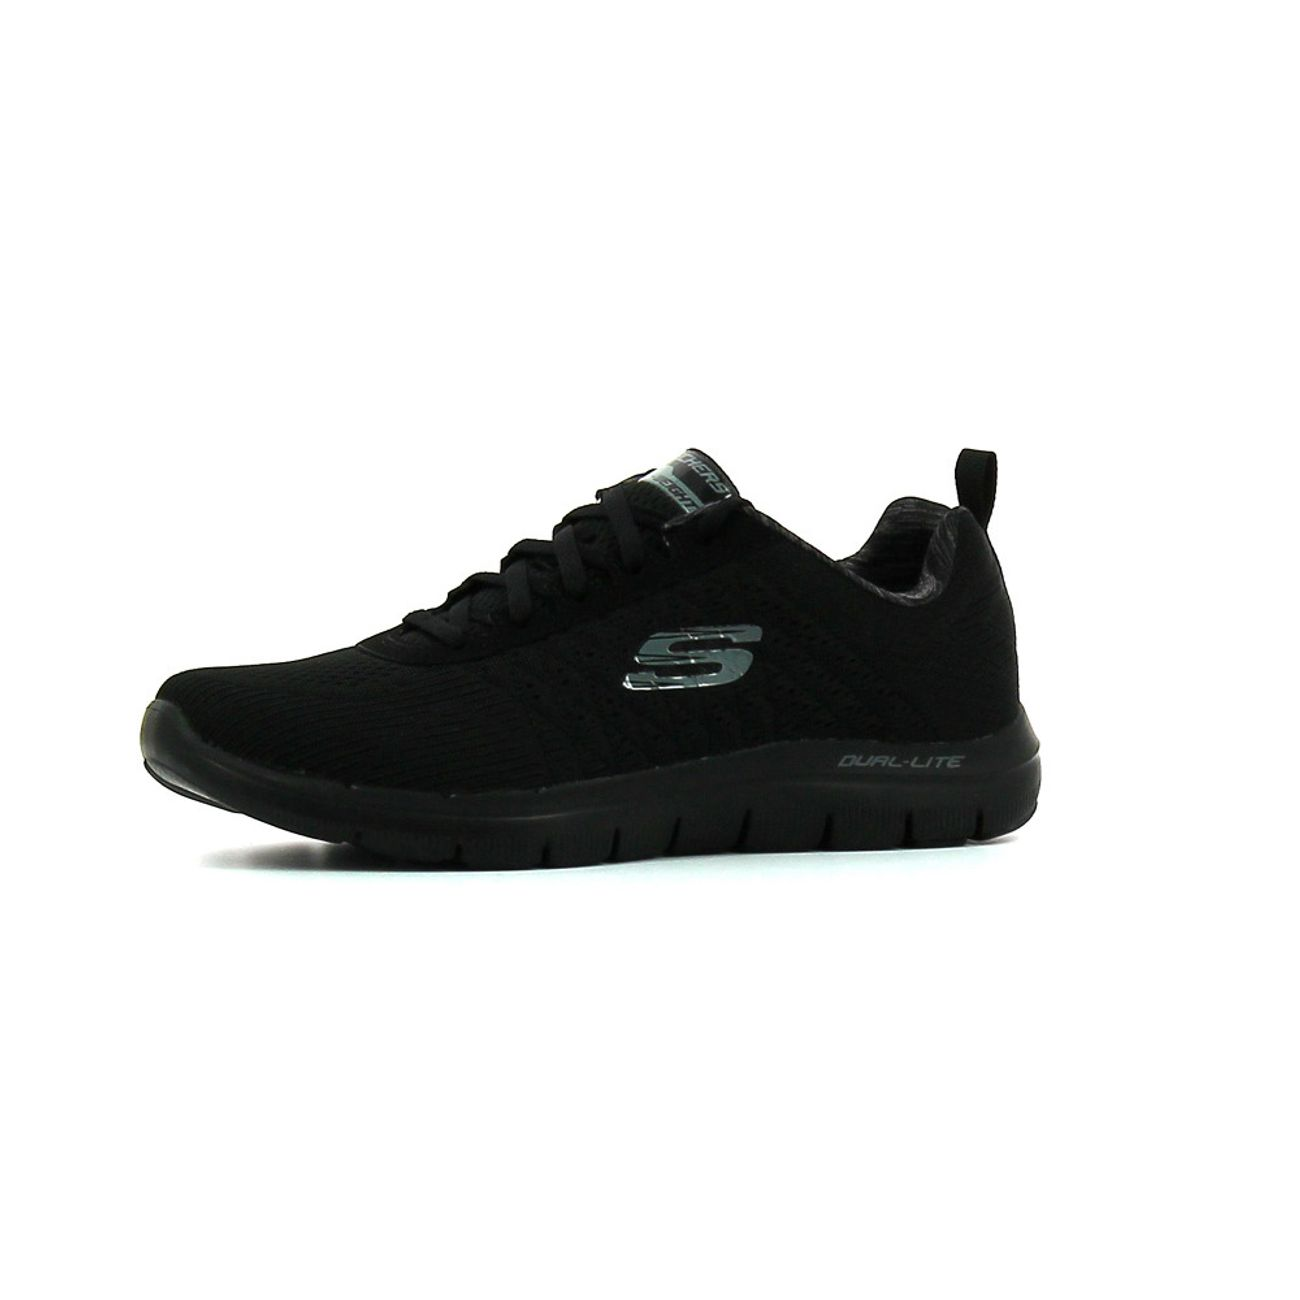 Chaussures Skechers Homme Pas Cher | Soldes Chaussures Skechers